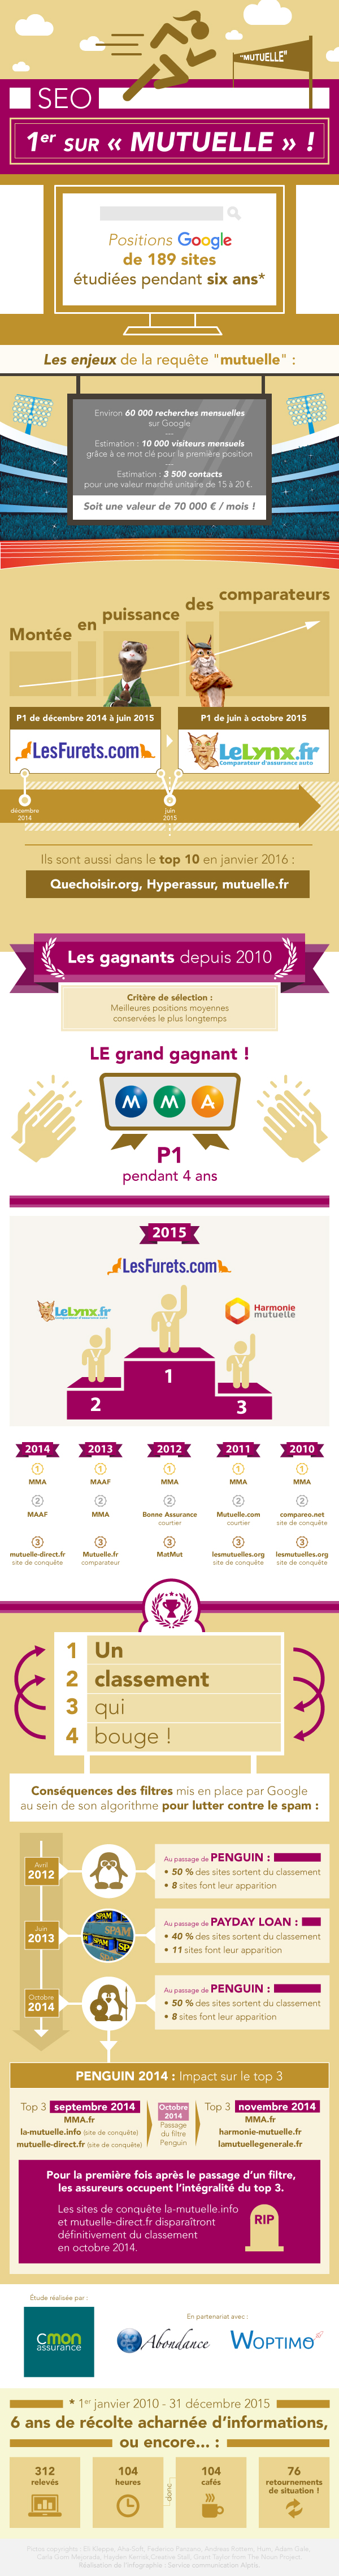 infographie-top20-mutuelle